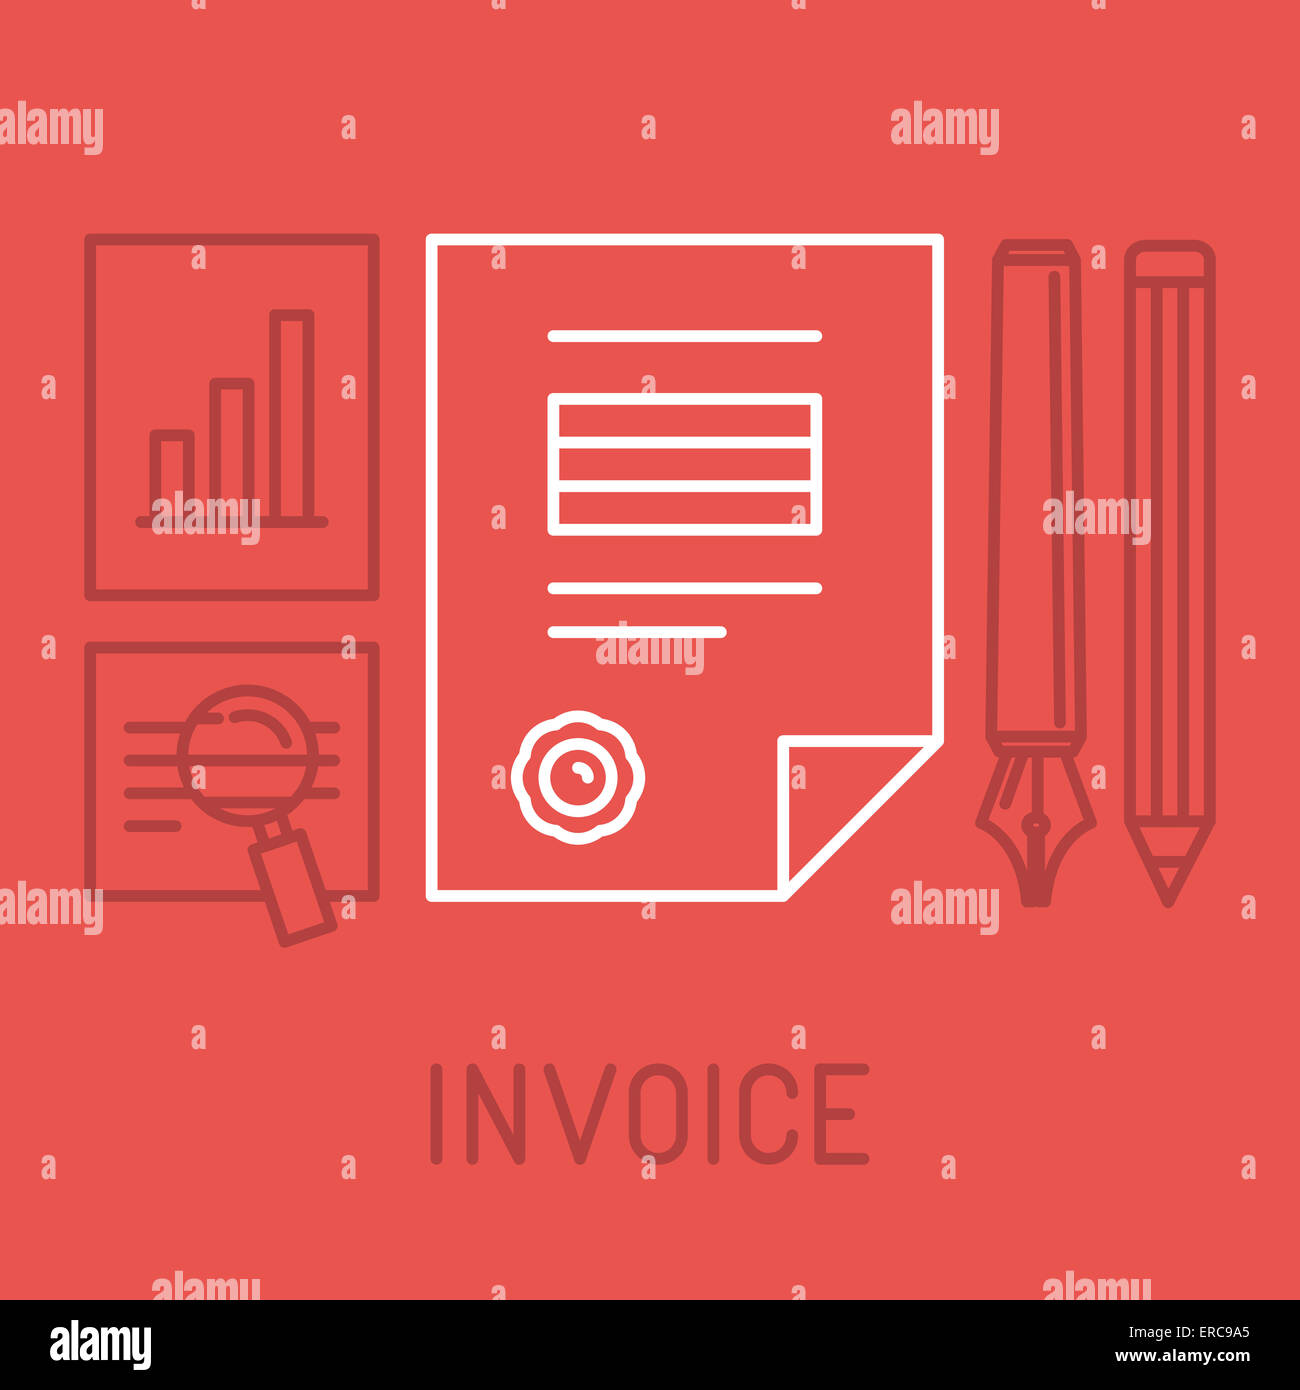 Invoice concept in outline style - bill icon with stamp paid - Stock Image